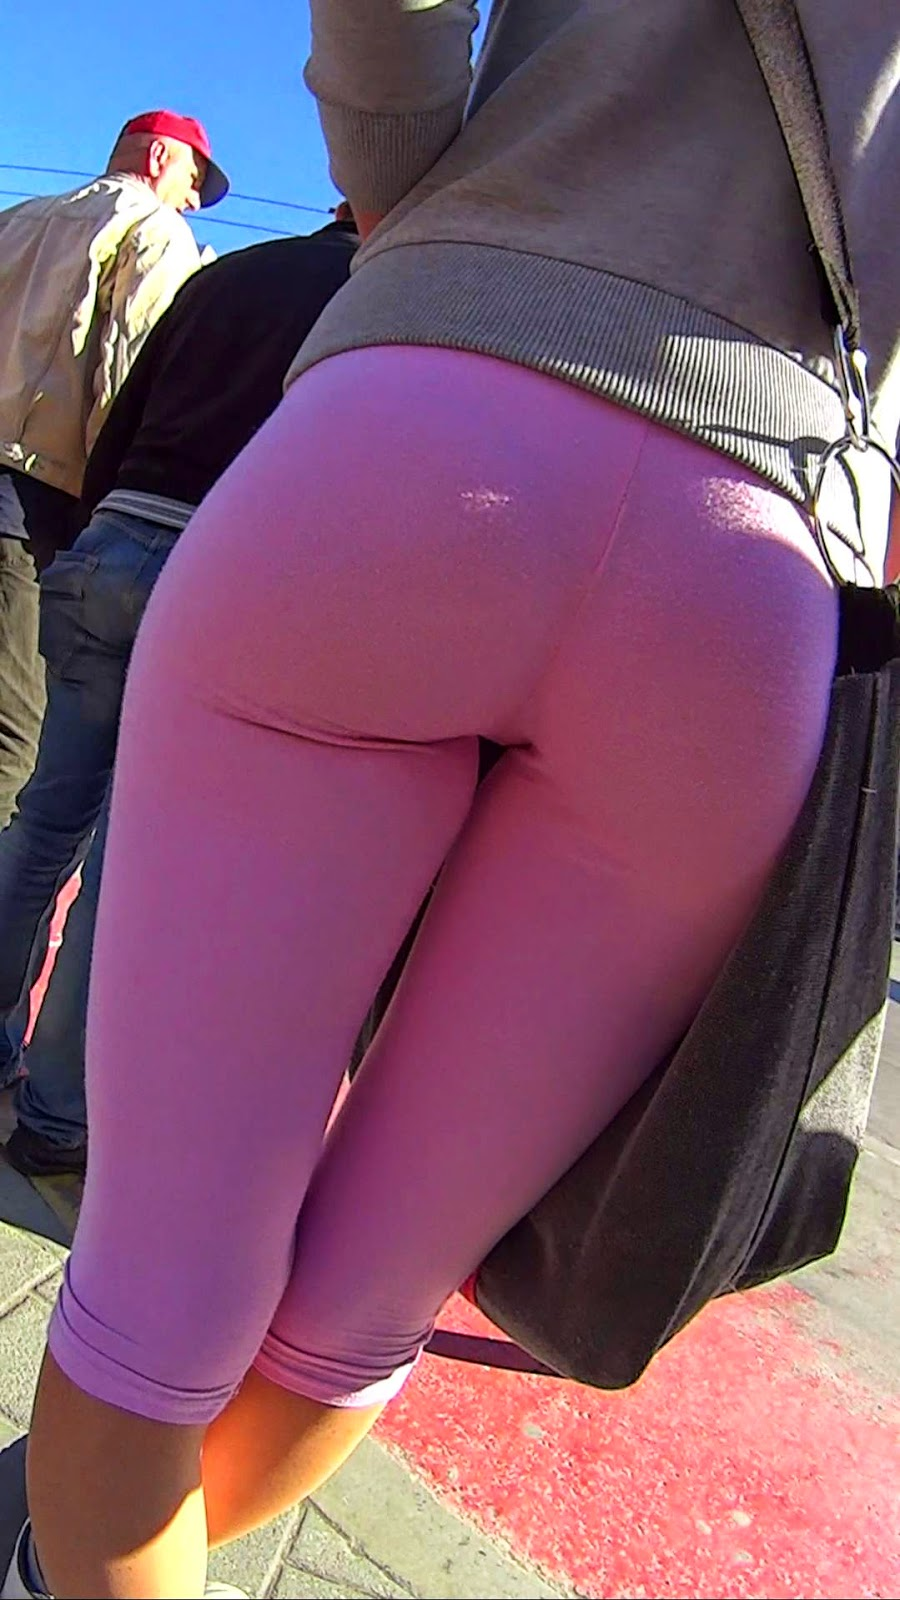 Excellent idea Hot naked blonds with yoga pants think, that